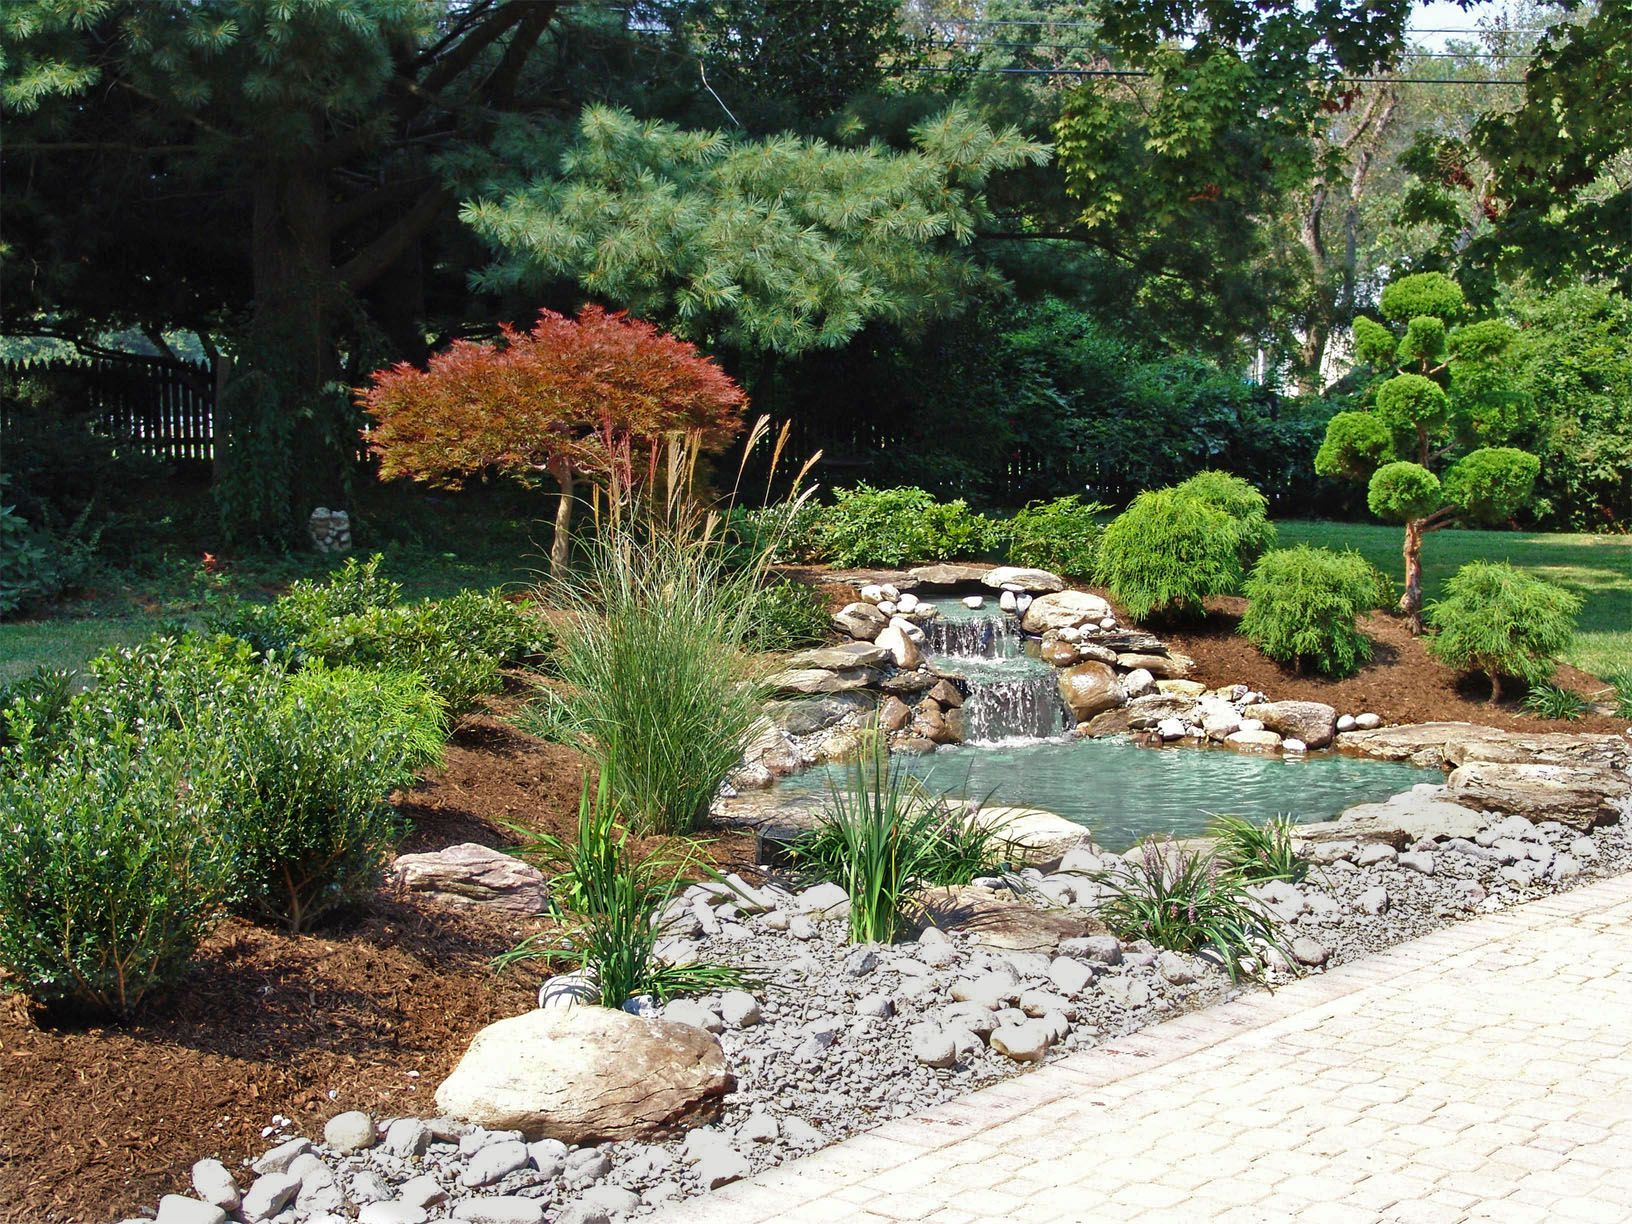 Japanese Garden Landscape Design With Waterfall And Pond